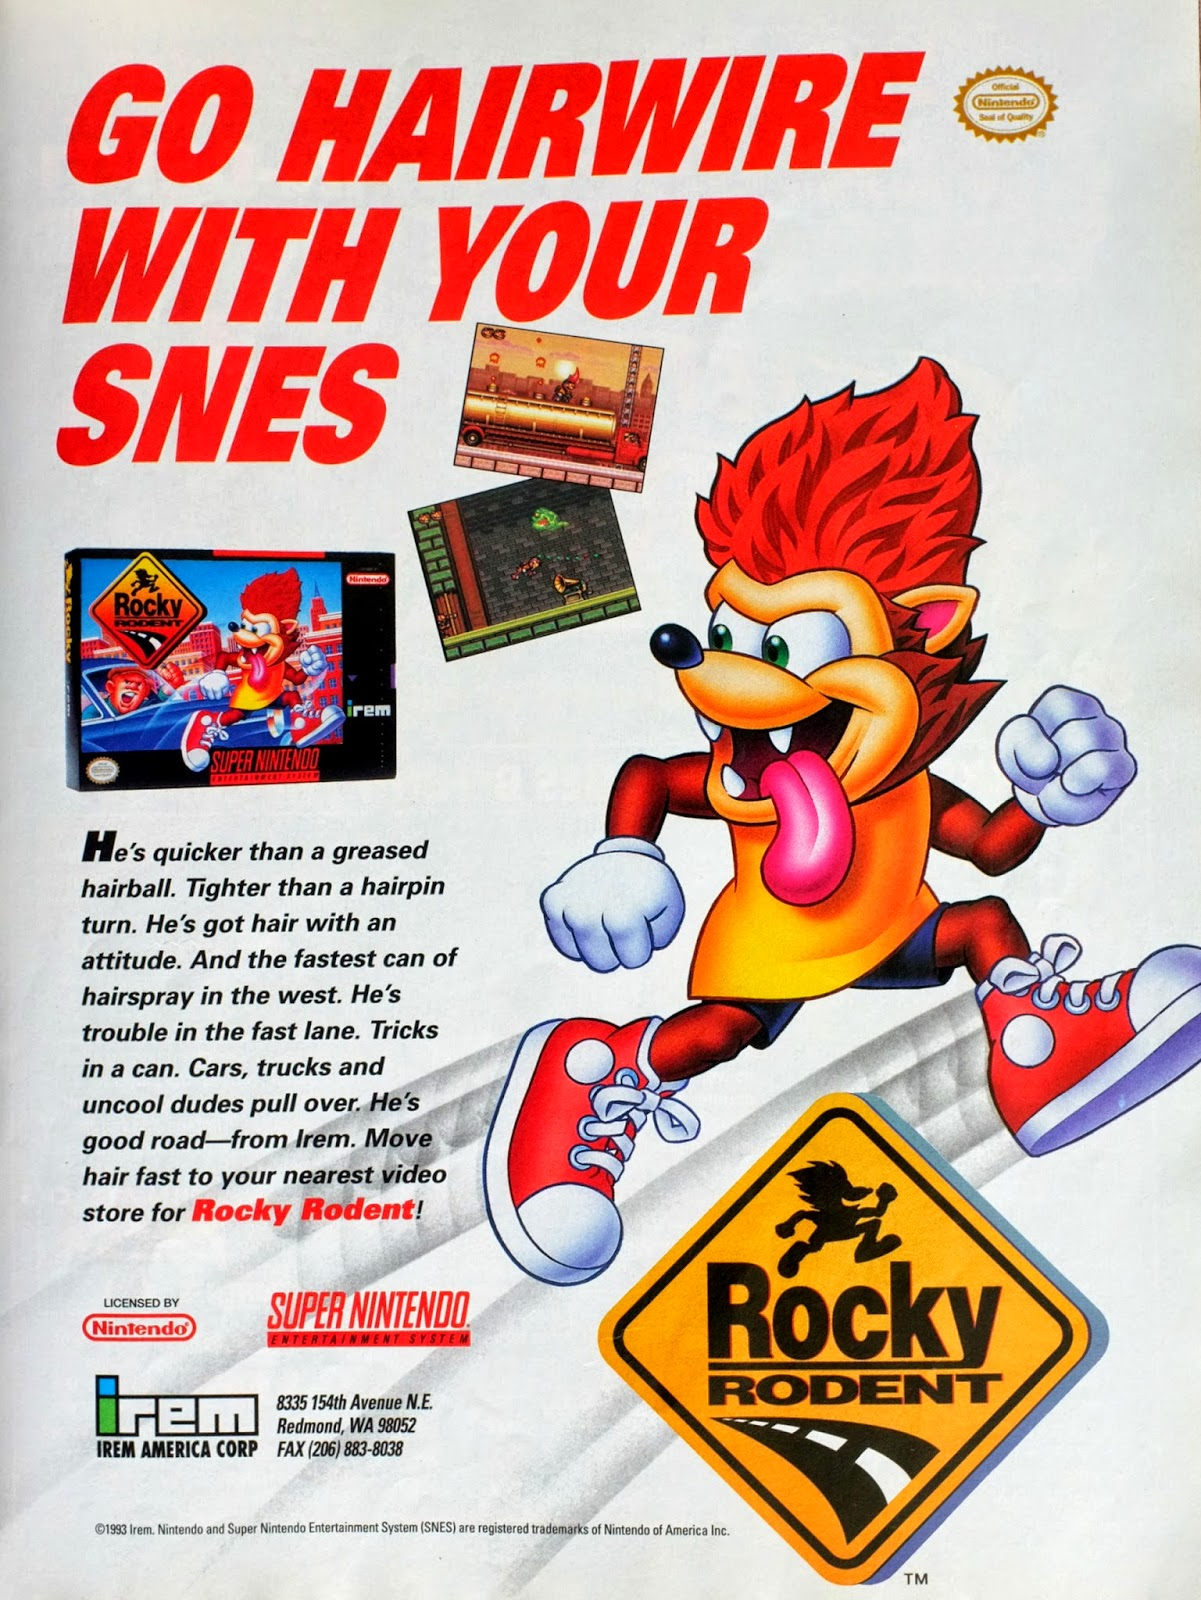 Rocky Rodent for SNES advertisement